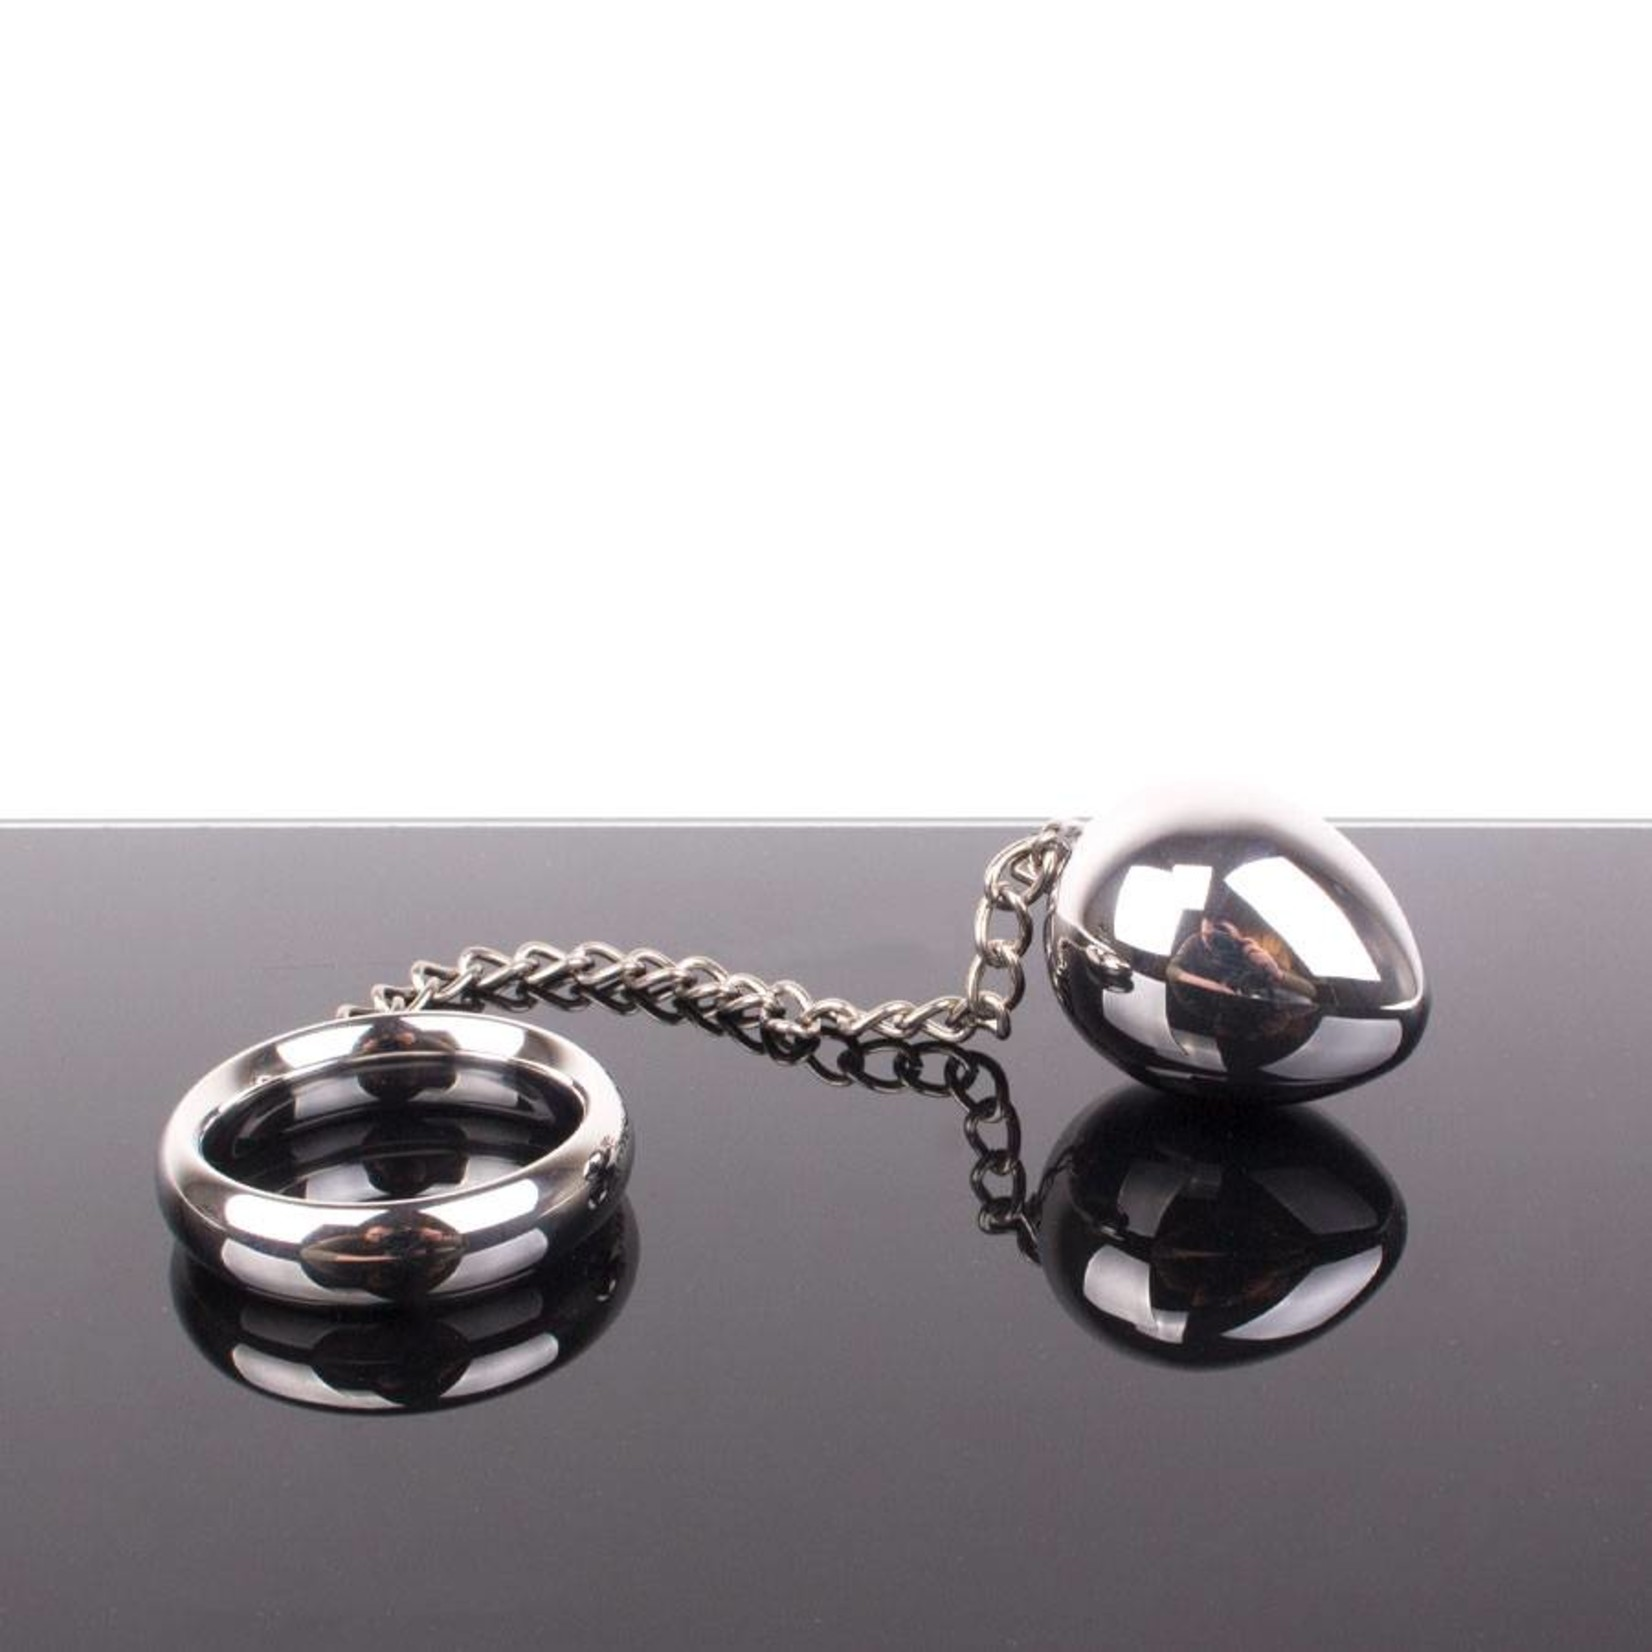 KIOTOS Steel Donut C-Ring Anal Egg with Chain40x40